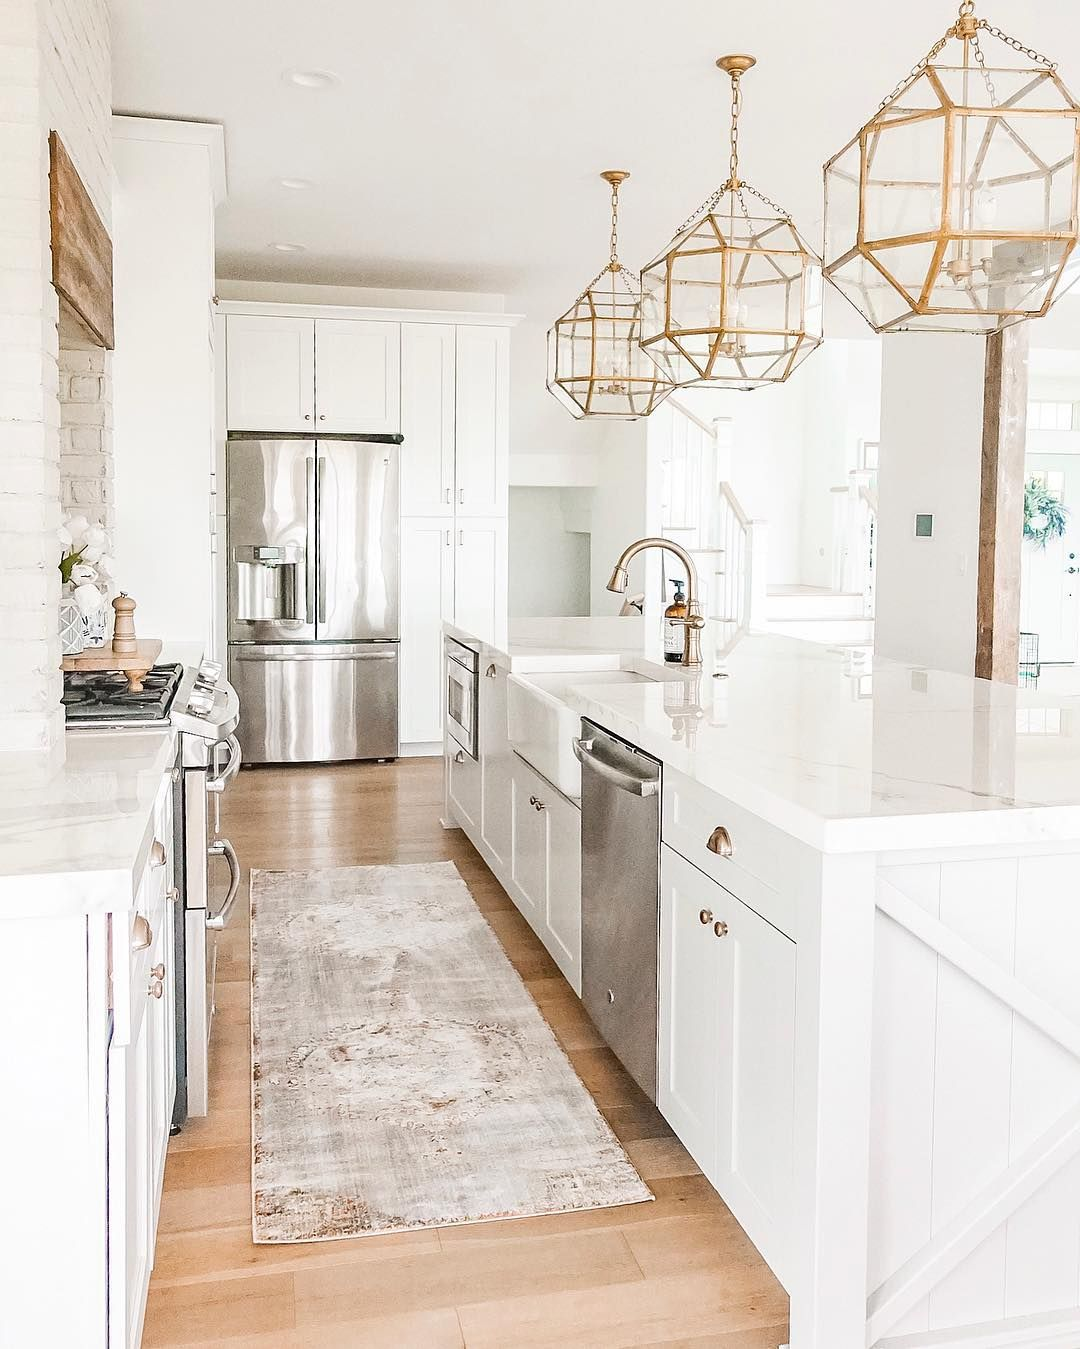 White Kitchen Brass Gold Light Fixture And Hardware Big Kitchen Island White Cabinets Farmh White Kitchen Design Kitchen With Big Island Gold Light Fixture